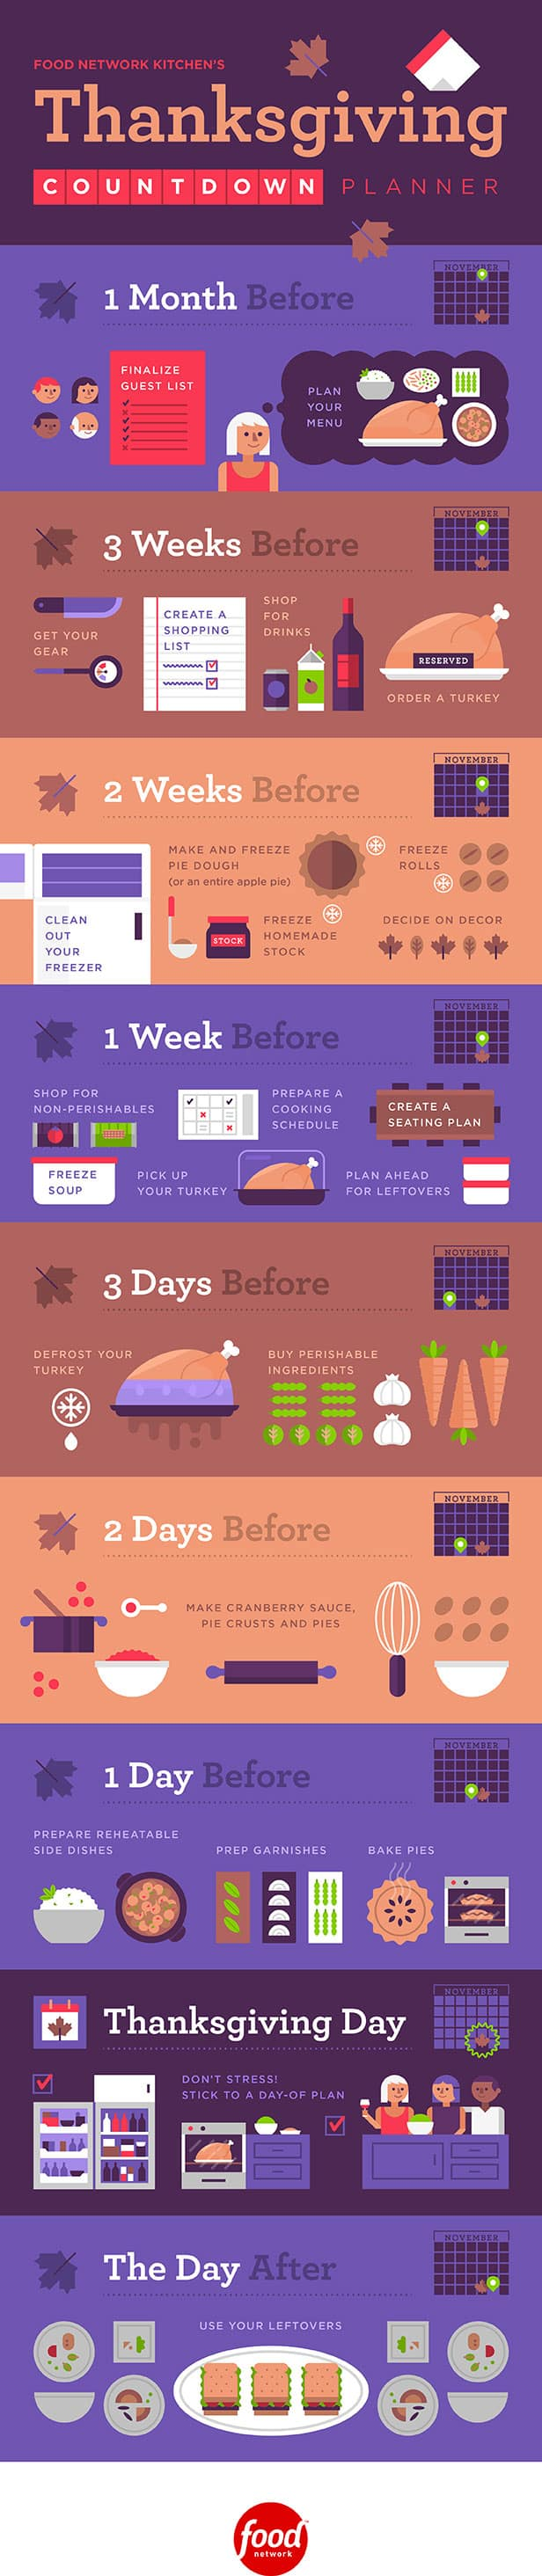 thanksgiving planner infographic